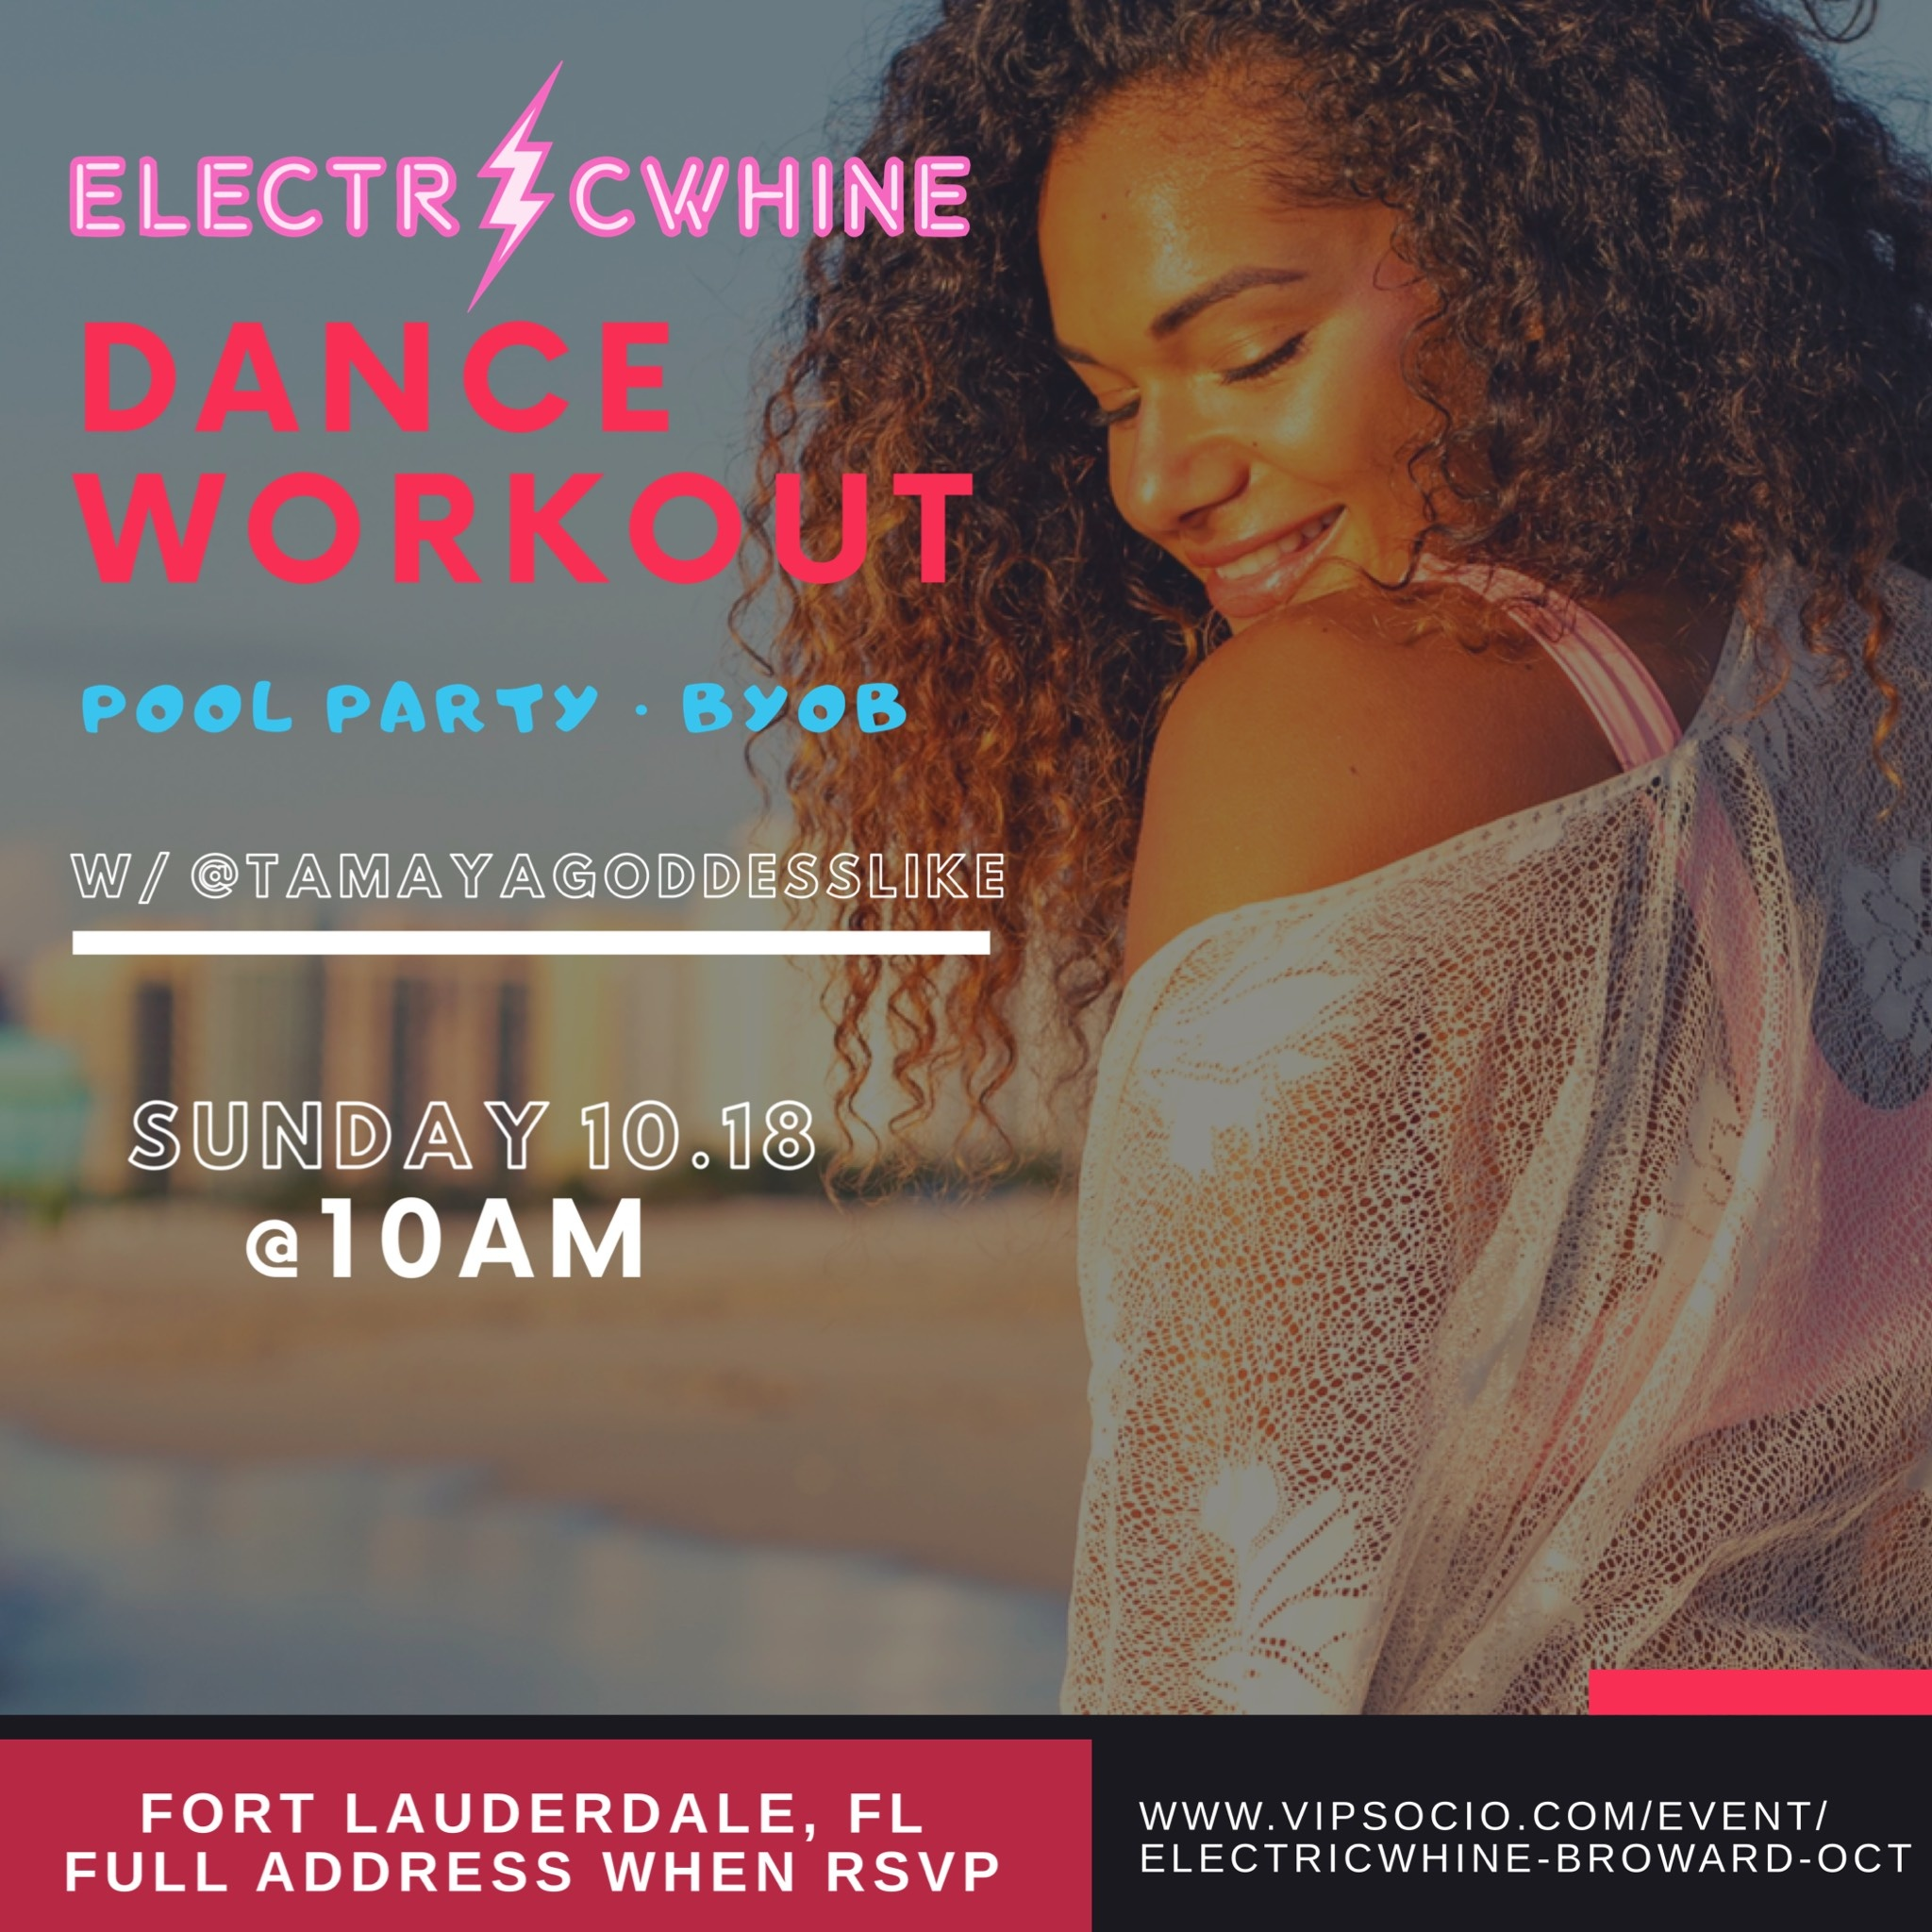 Electricwhine Broward